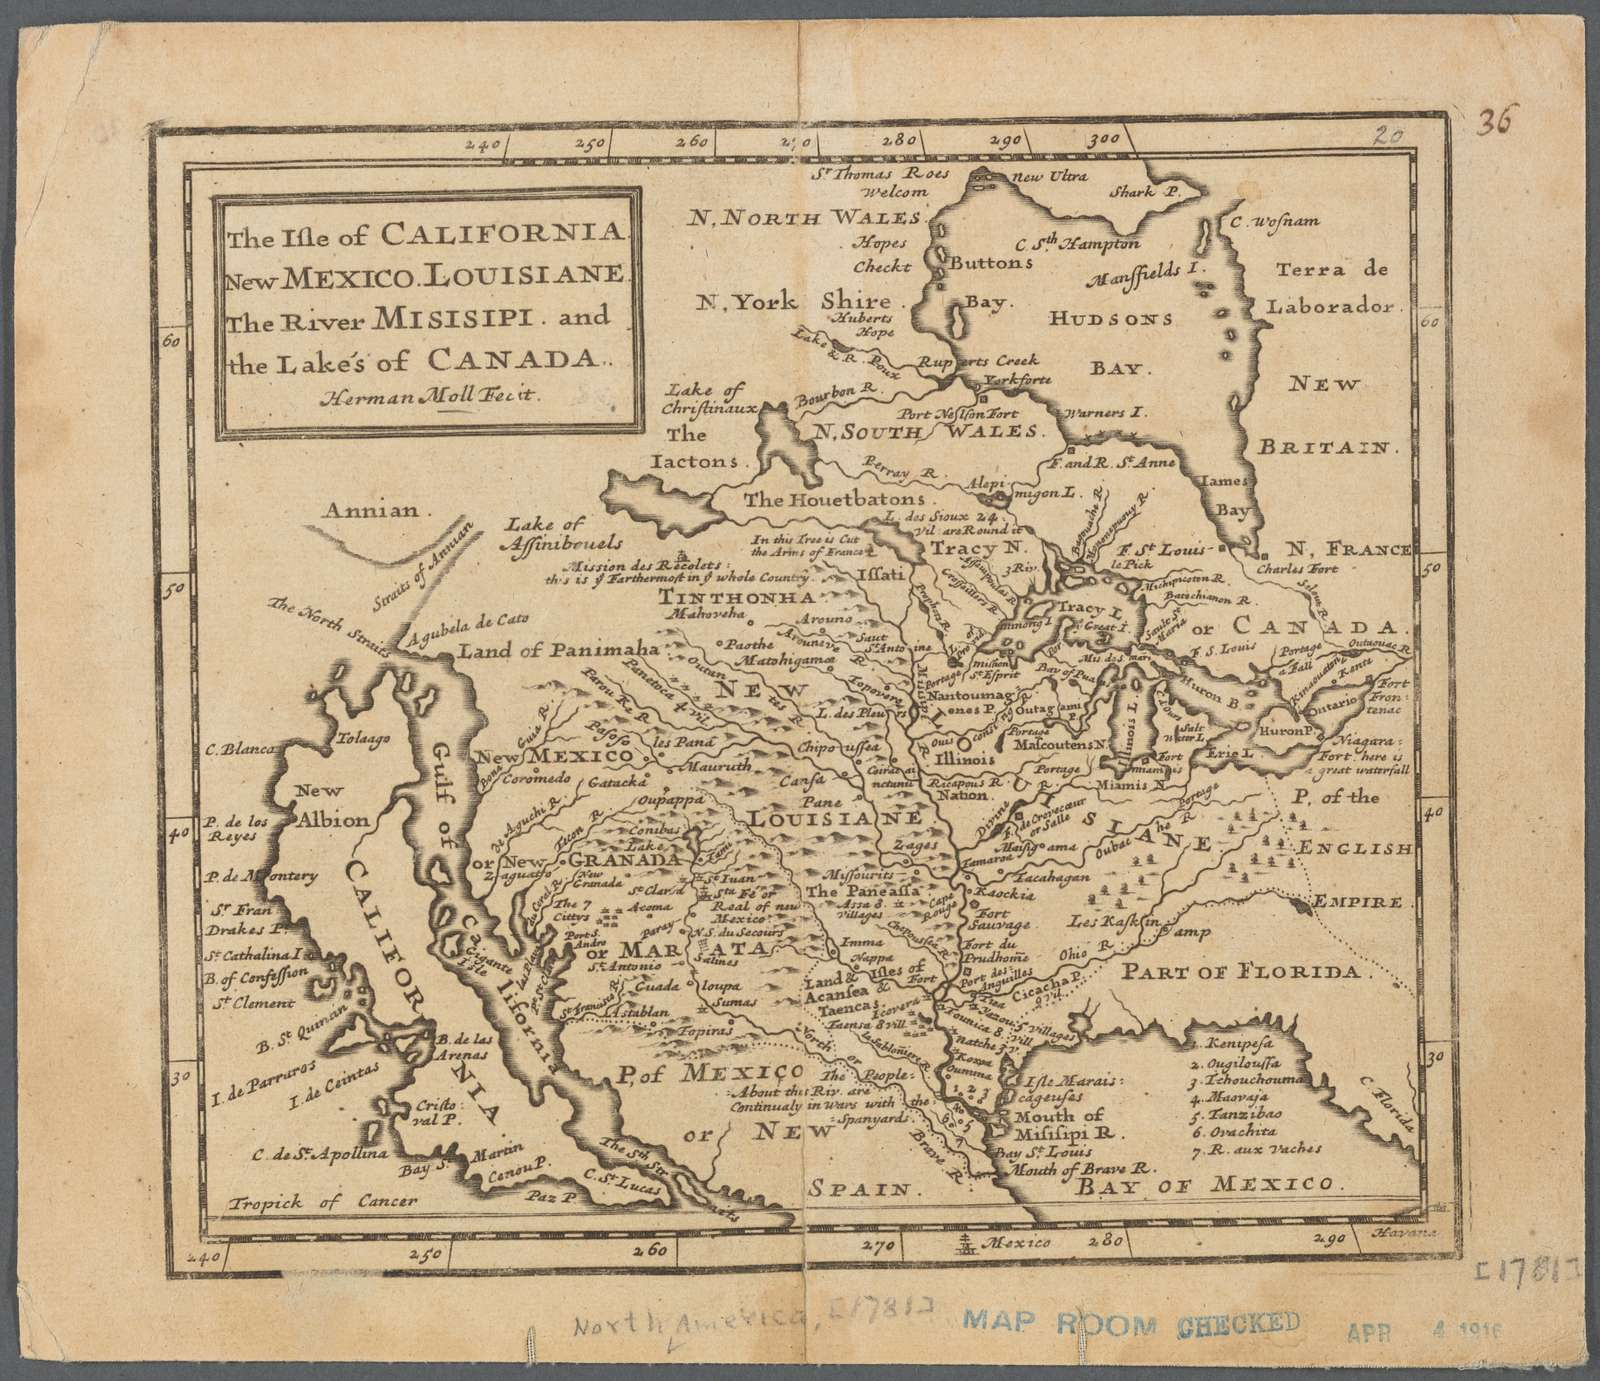 The isle of California, New Mexico, Louisiane, the river Misisipi, and the lakes of Canada